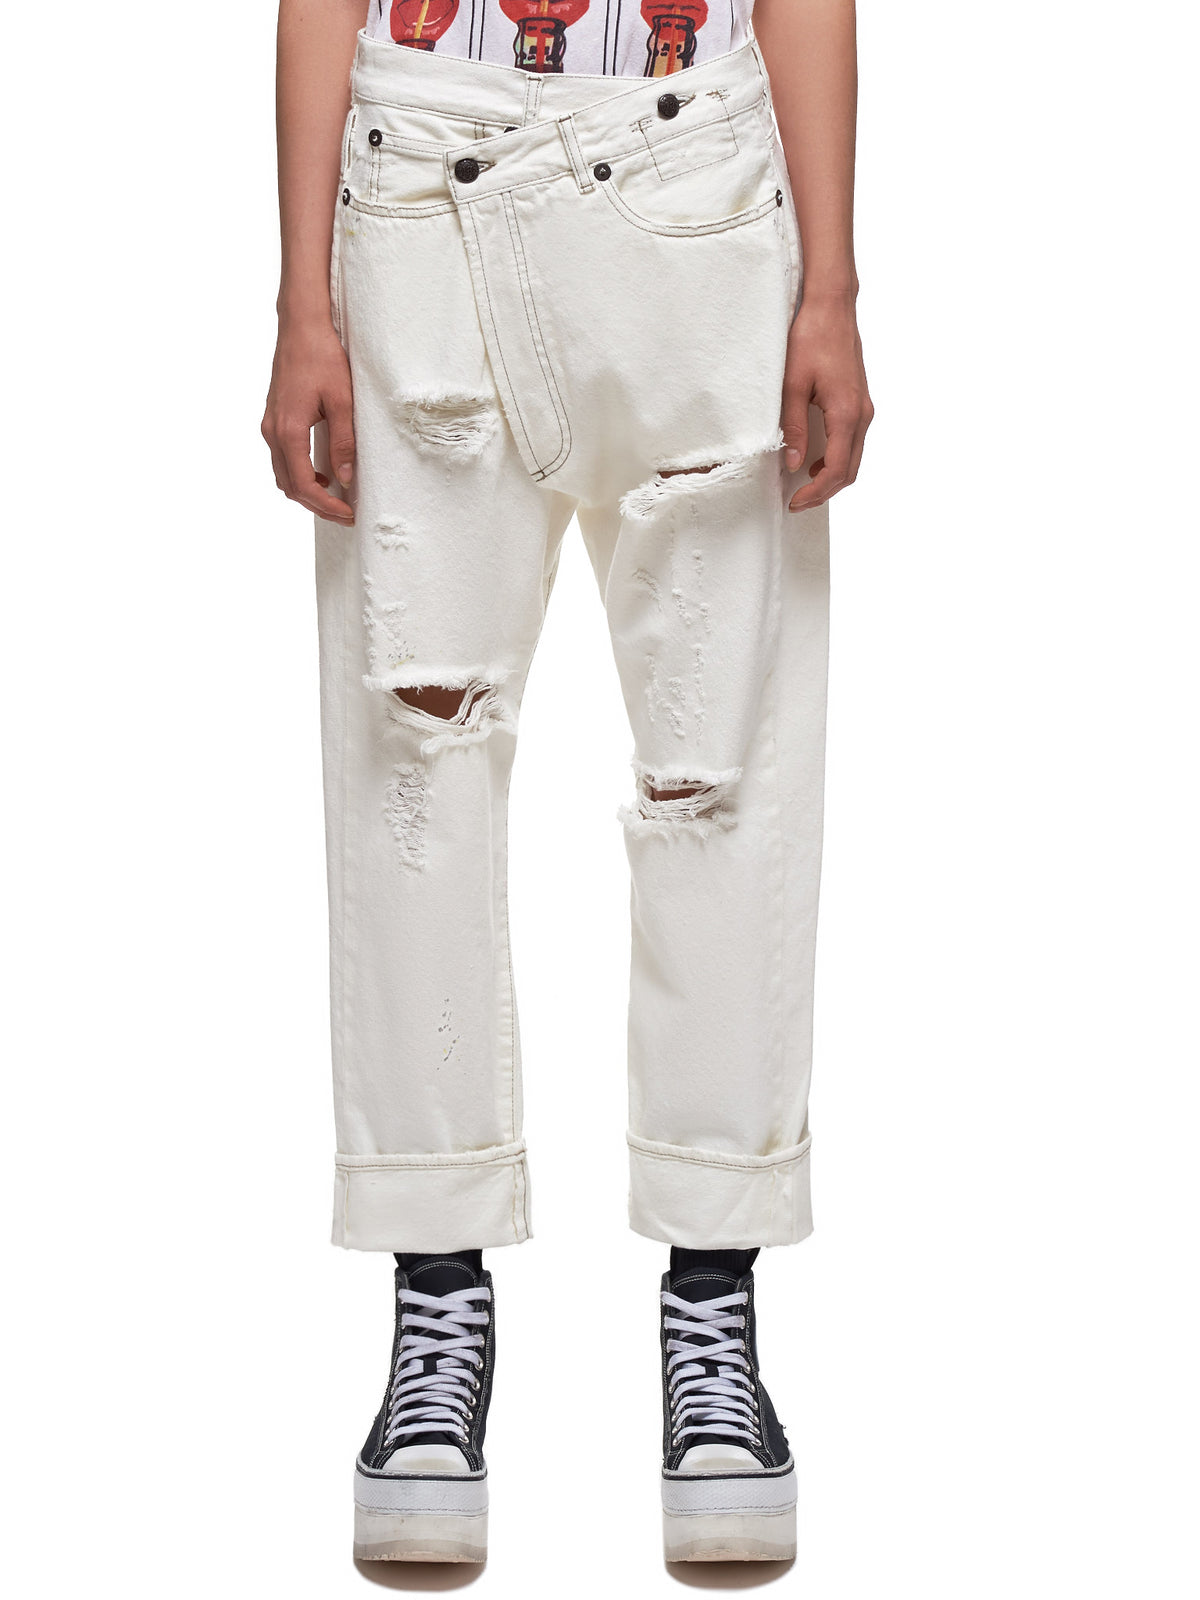 Crossover Jeans (2048-811A-WHITE)